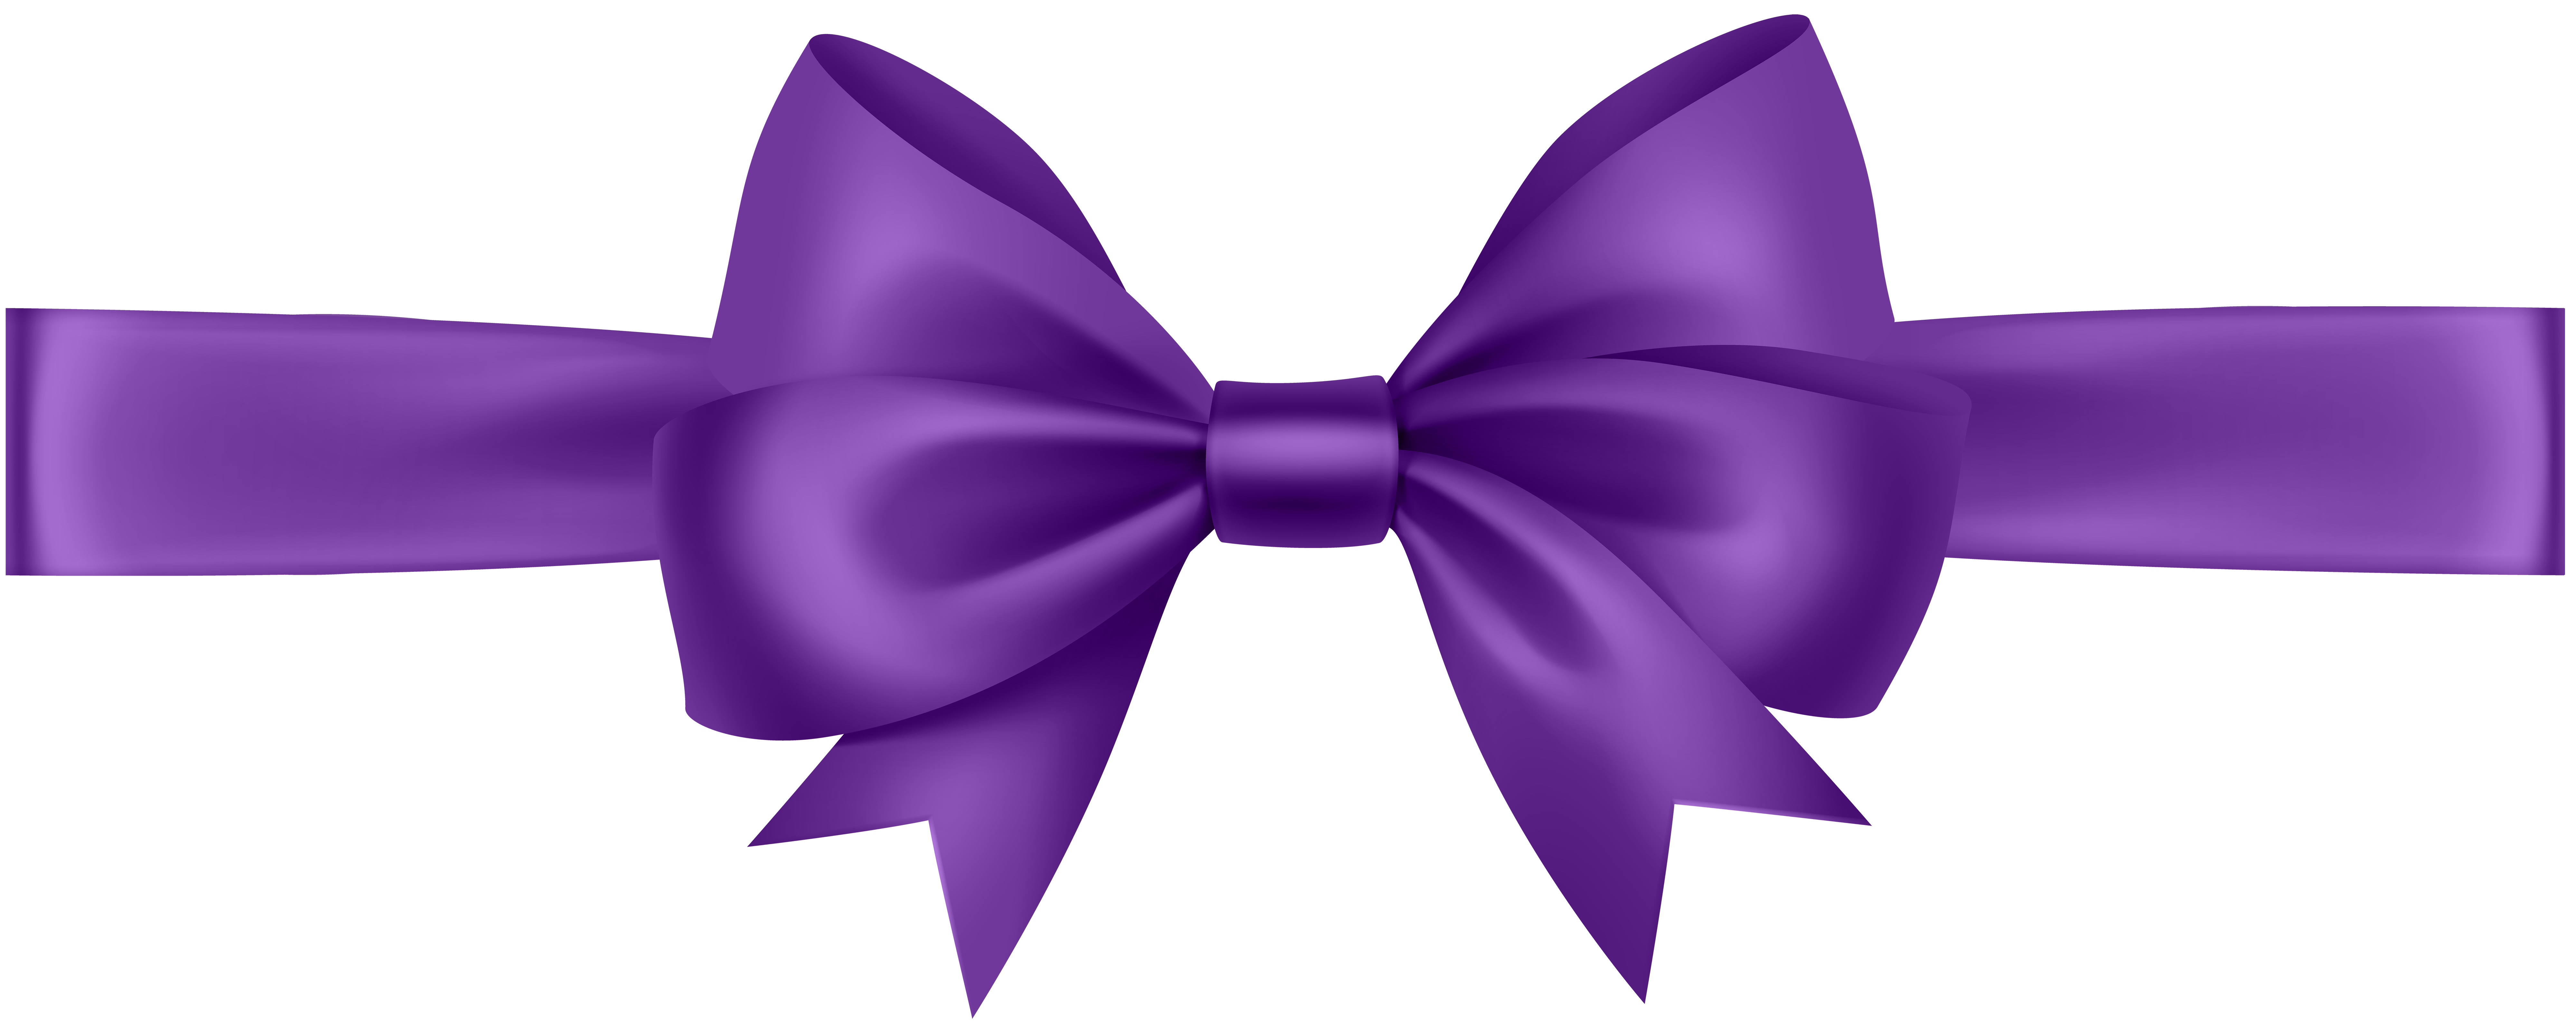 Clipart bow pastel bow. La o roxo png